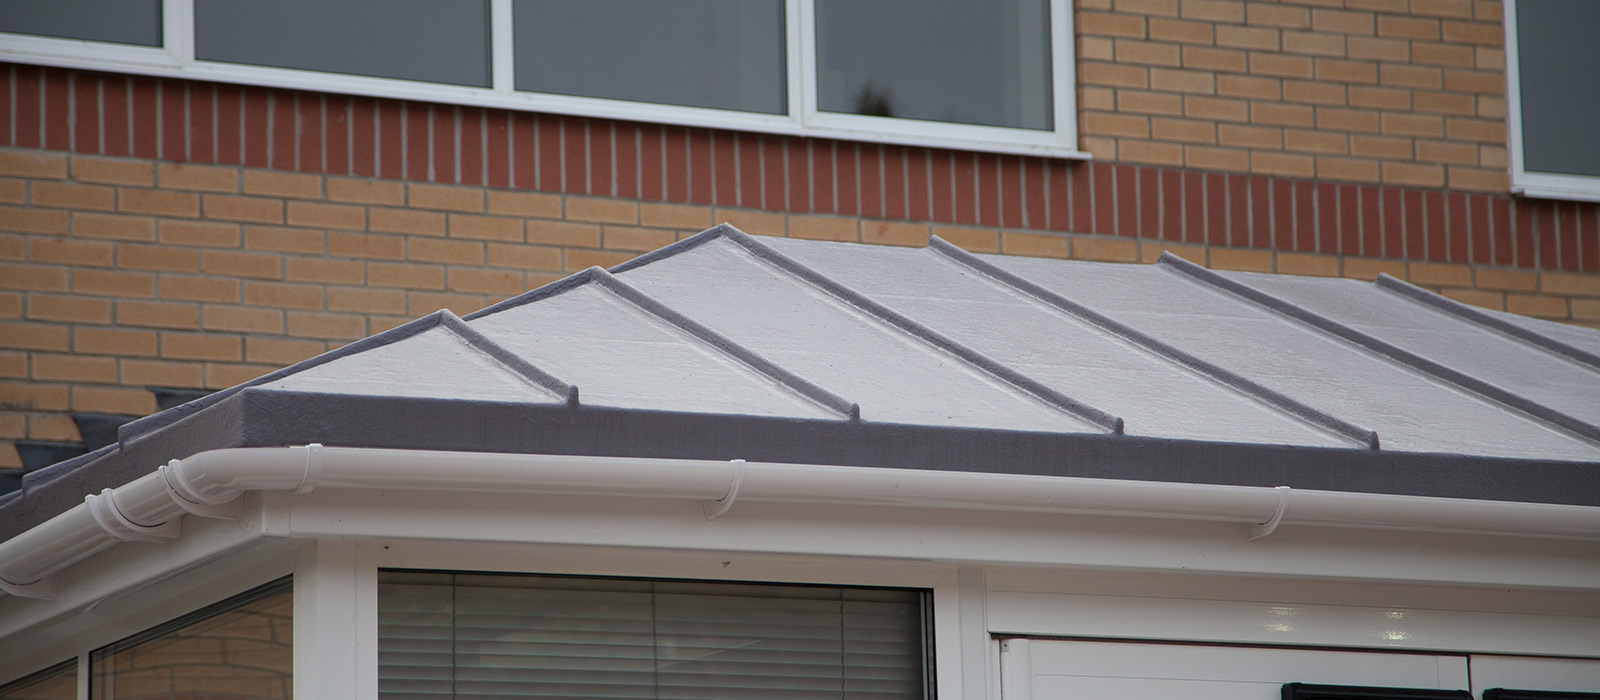 Roofing Services Bourne Grantham Thurlby Lincolnshire